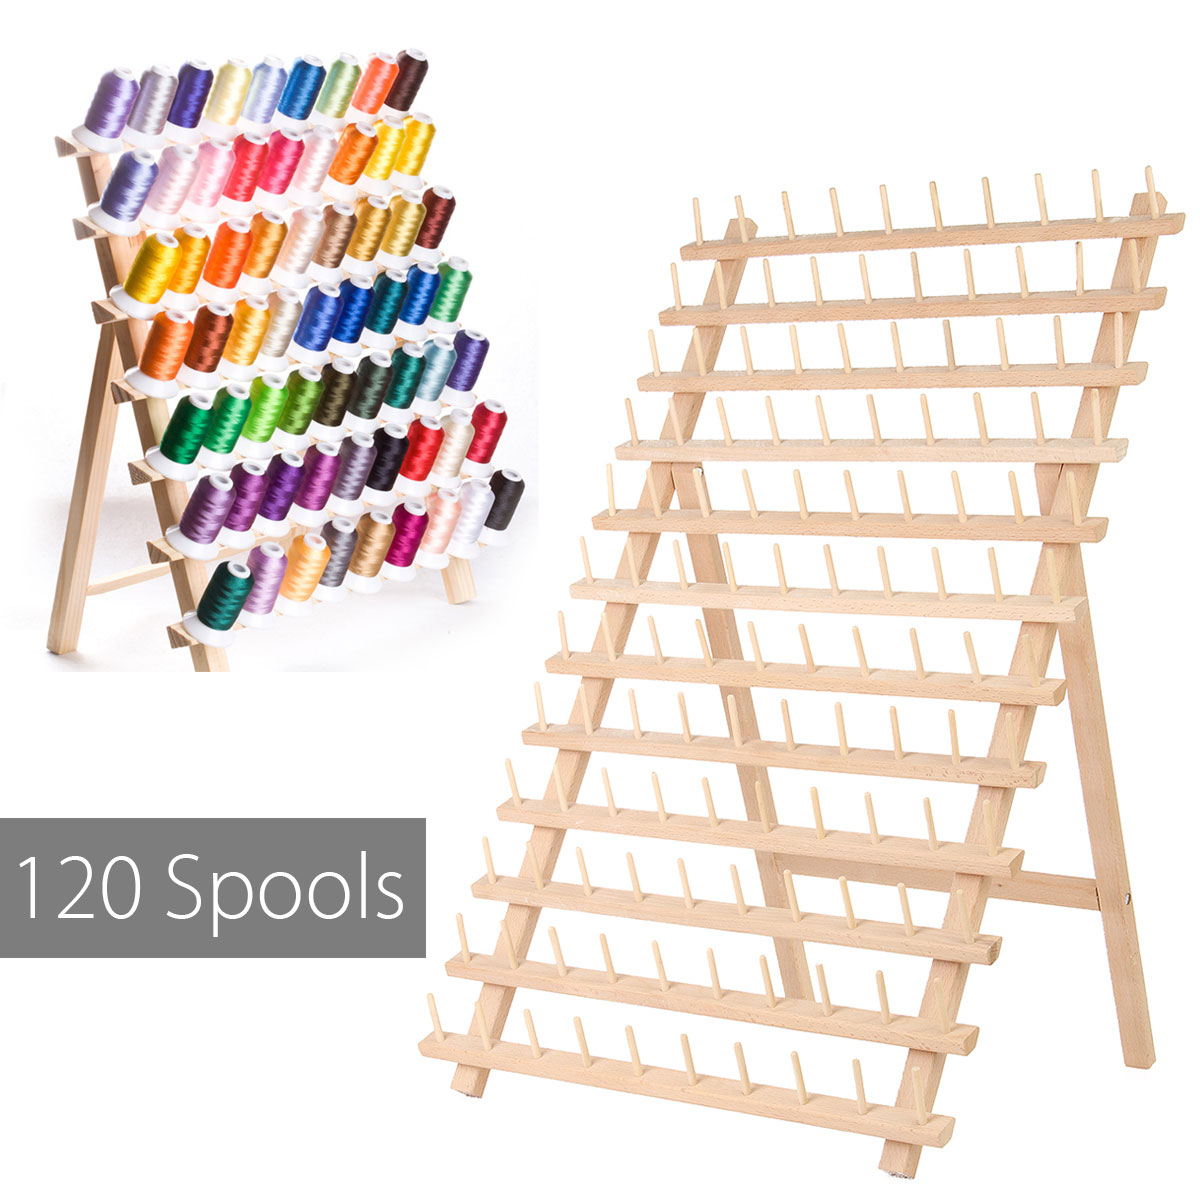 Thread Rack 120 Spools Wood Folded Thread Rack Sewing Embroidery Stand Holder Organizer